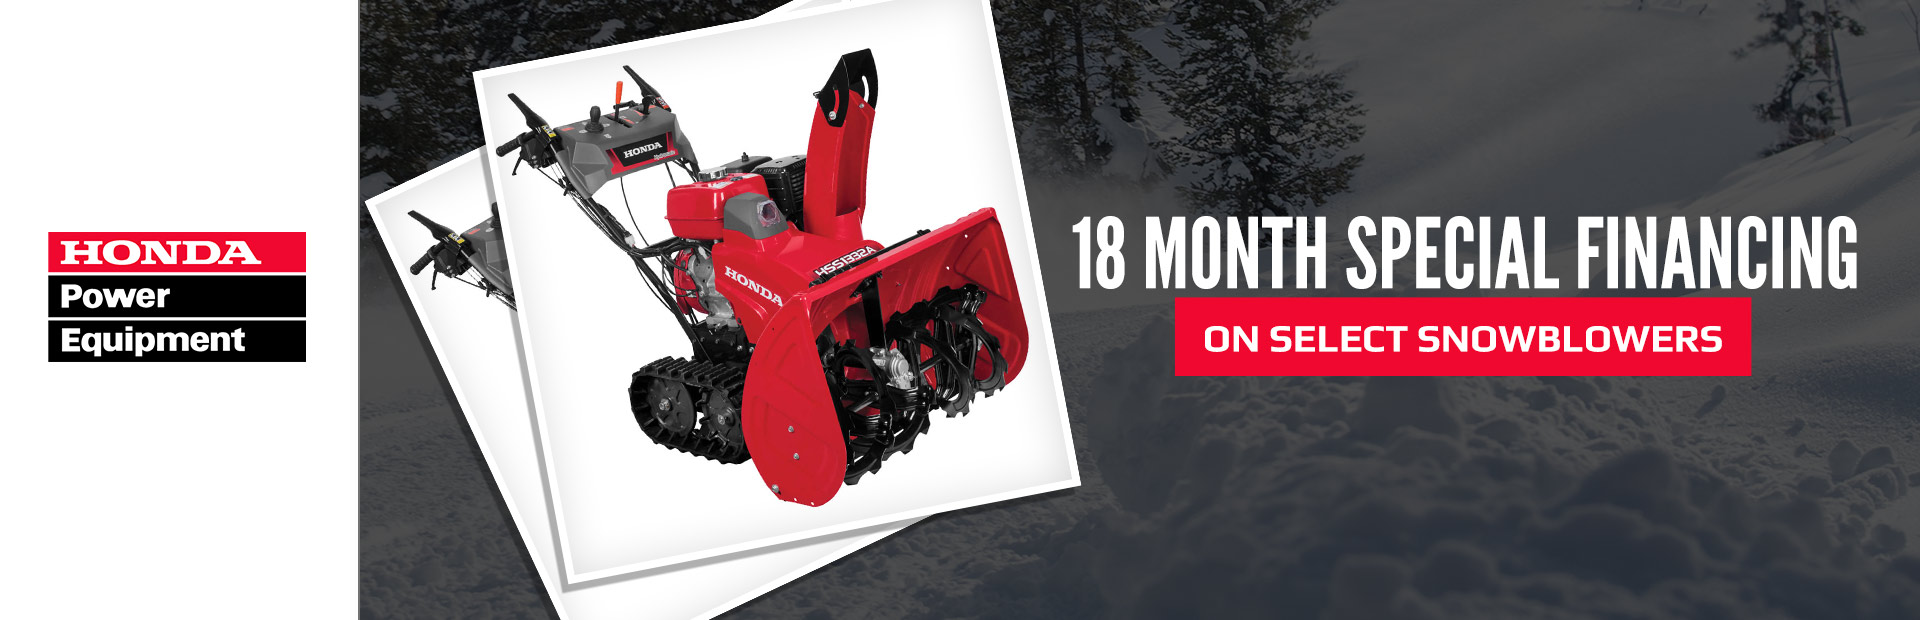 Honda Power Equipment: 18 Month Special Financing on Select Snowblowers